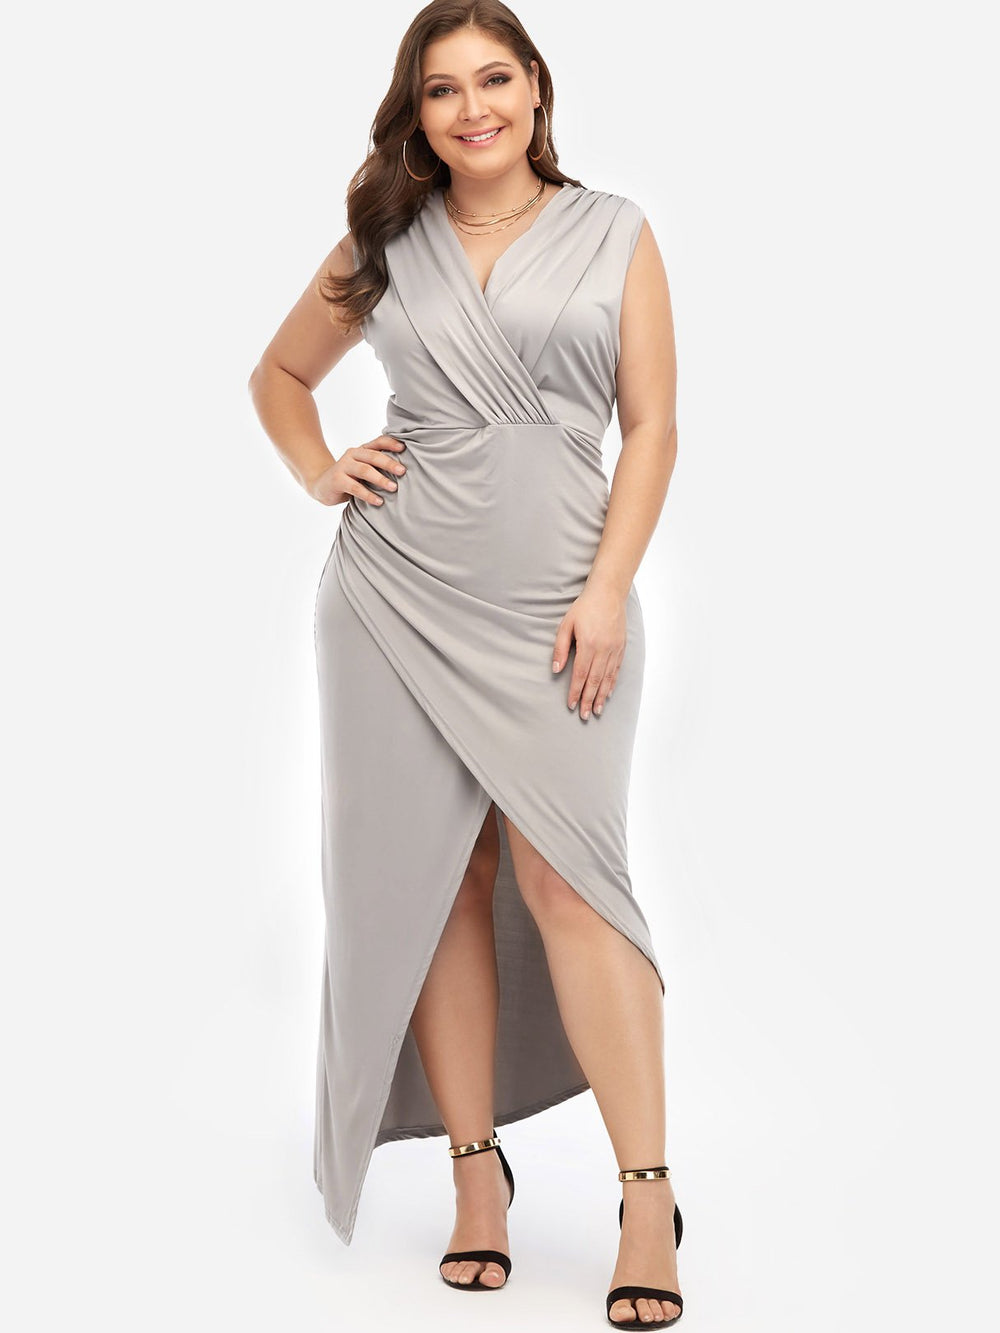 Womens Sleeveless Plus Size Maxi Dresses